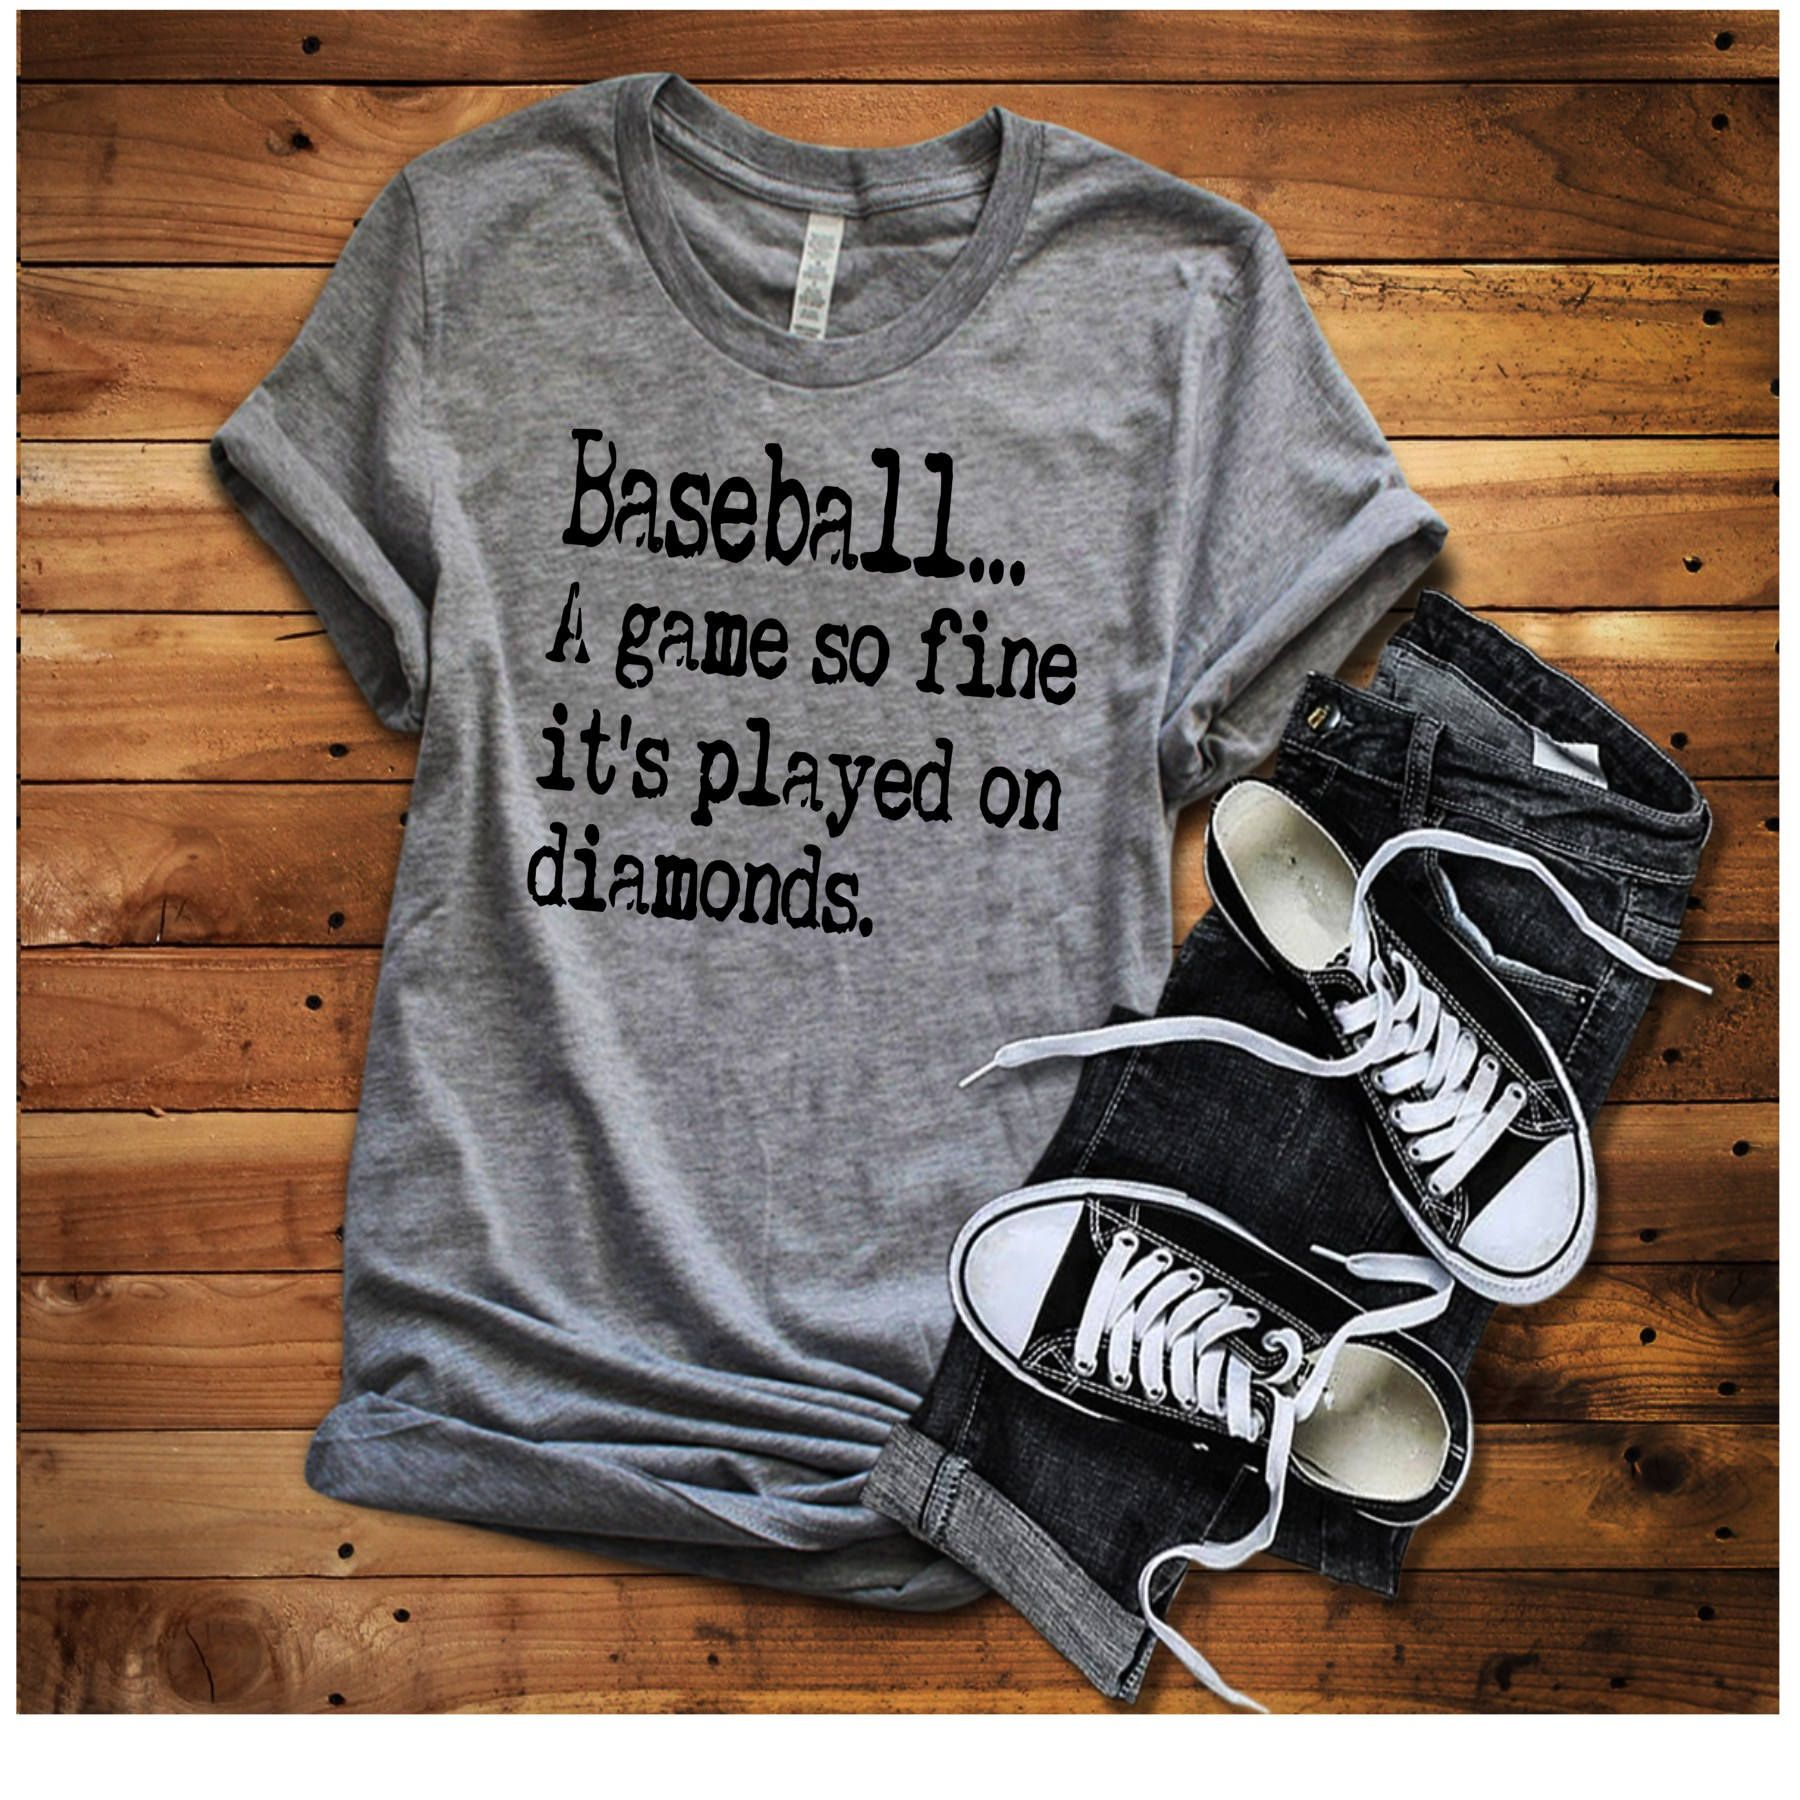 64e54140 A Game So Fine It's Played On Diamonds Shirt, Baseball Shirt, Baseball Mom  Shirt, Baseball Game Shirt, Game day shirt, Softball Shirt, by  SpunkySparkles on ...